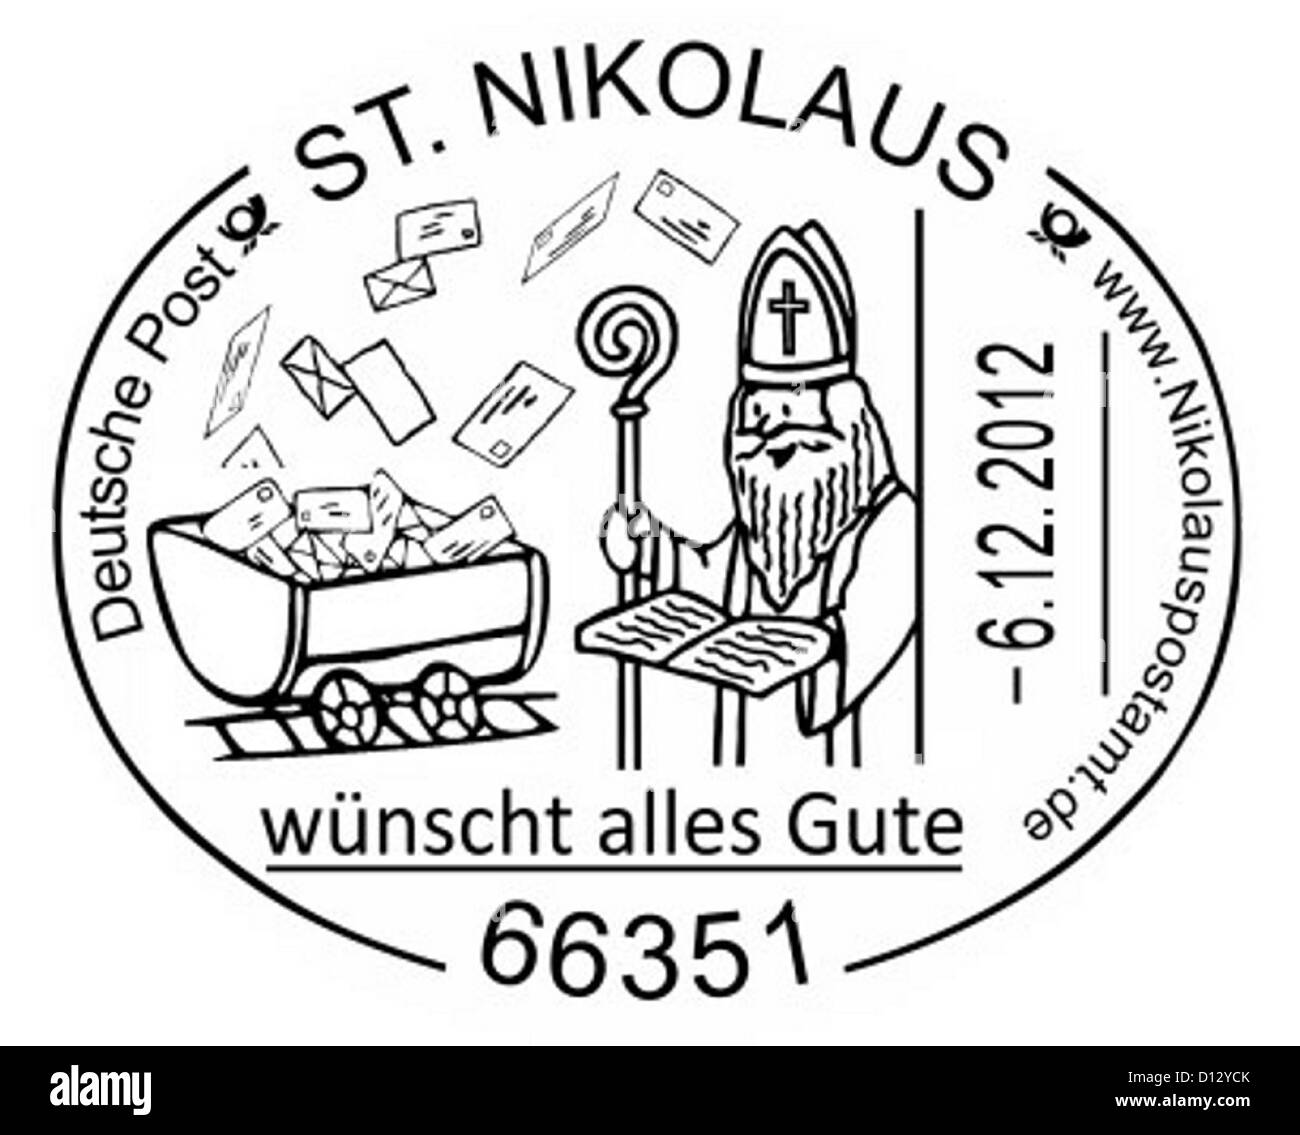 The special postmark of the Nicholas post office is seen in 66351 St. Nikolaus, Germany, 05 December 2012. Since - Stock Image